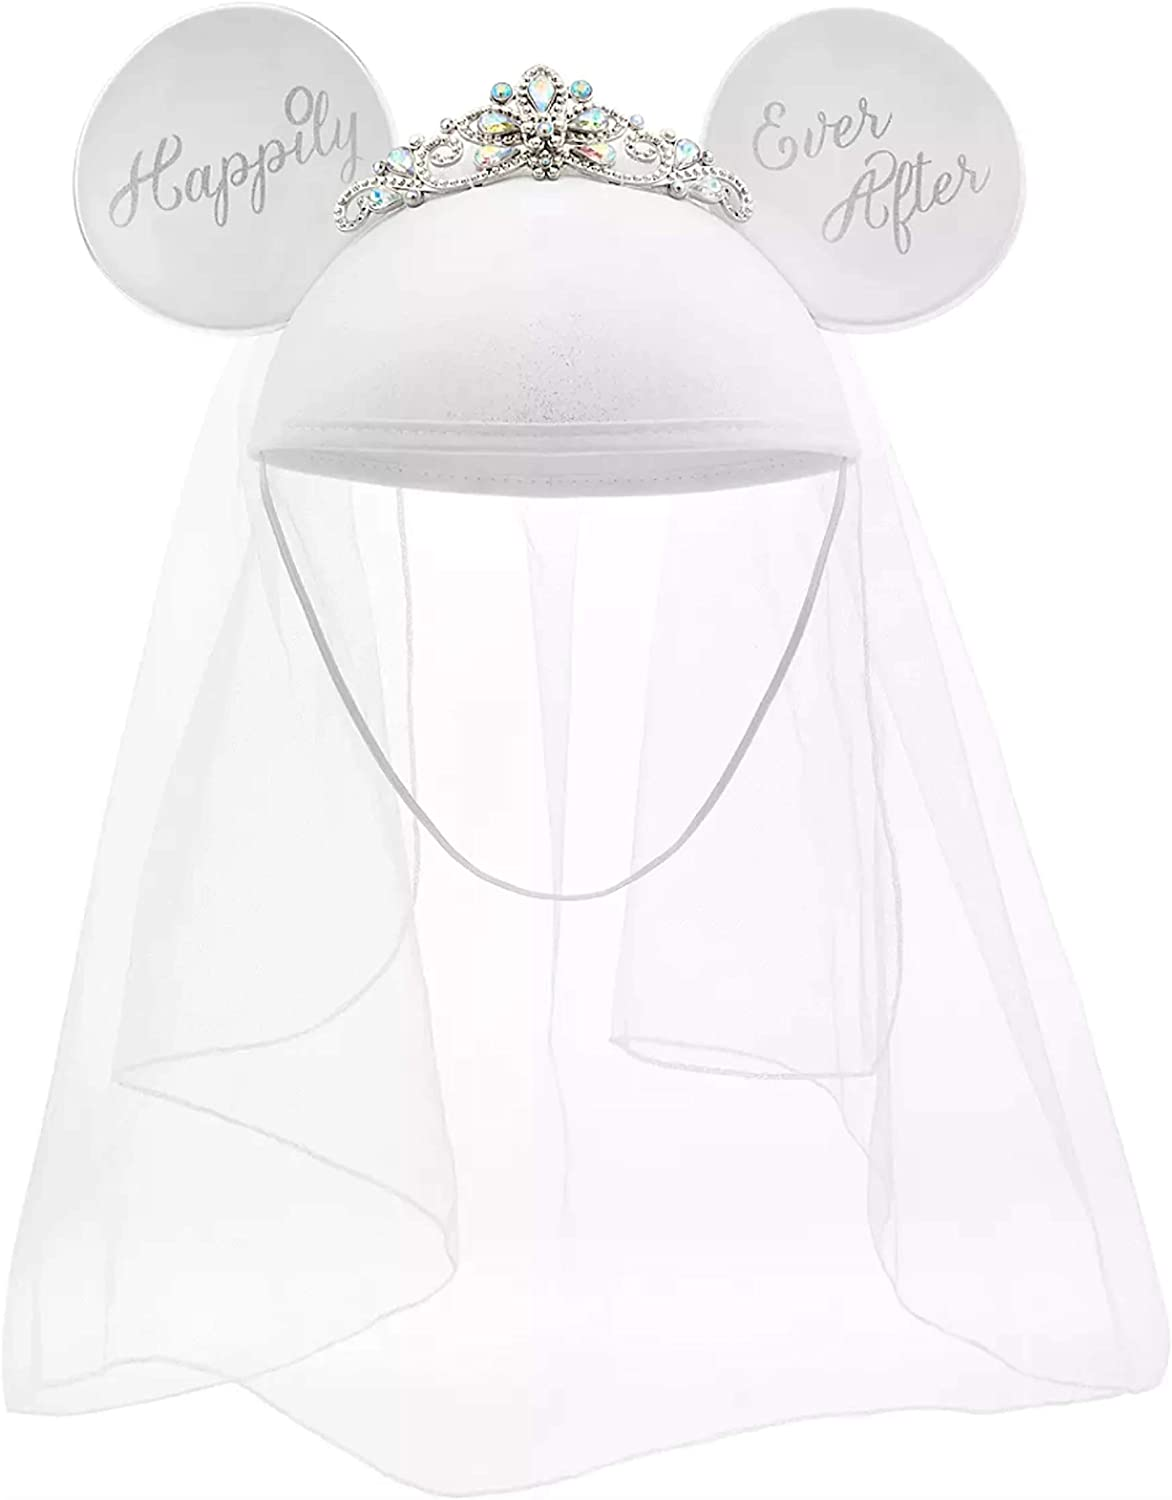 Disney Parks Mickey Minnie Bride Super beauty product restock quality top Ears Af Happily Veil Hat Superlatite Ever -